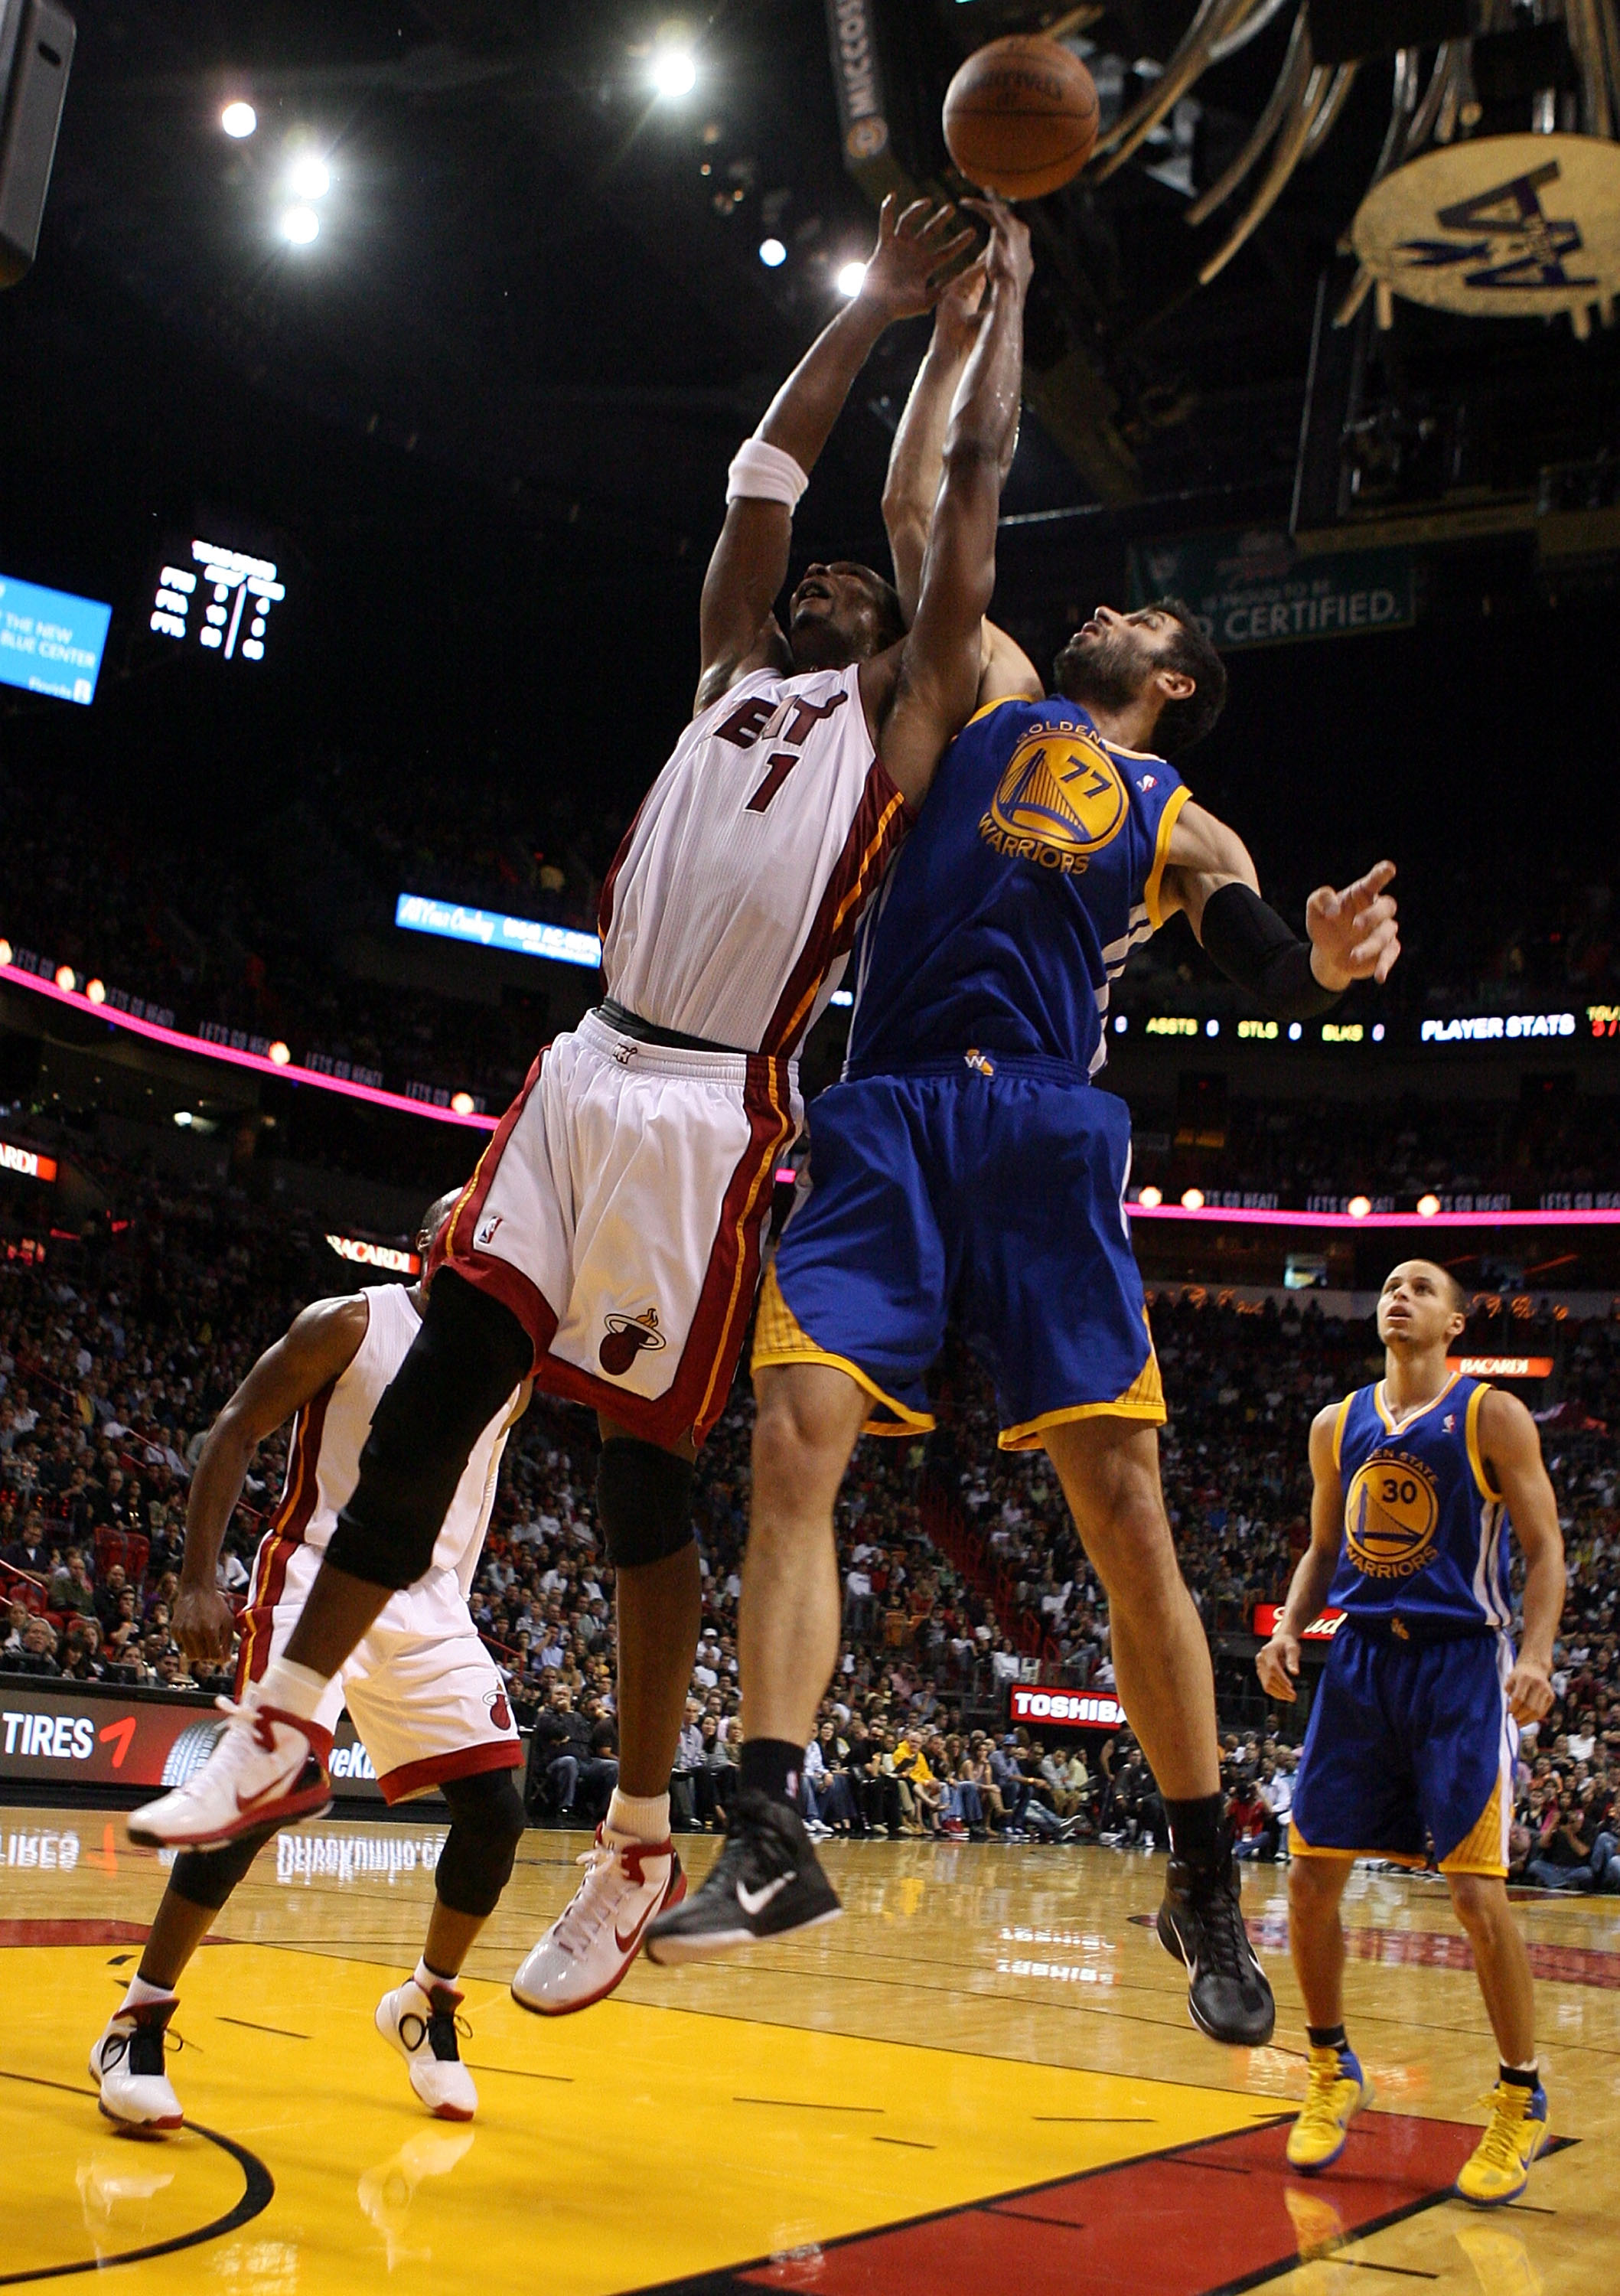 MIAMI, FL - JANUARY 01:  Forward Chris Bosh #1 of the Miami Heat rebounds over forward Vladimir Radmanovic #77 of the Golden State Warriors at American Airlines Arena on January 1, 2011 in Miami, Florida.  NOTE TO USER: User expressly acknowledges and agr